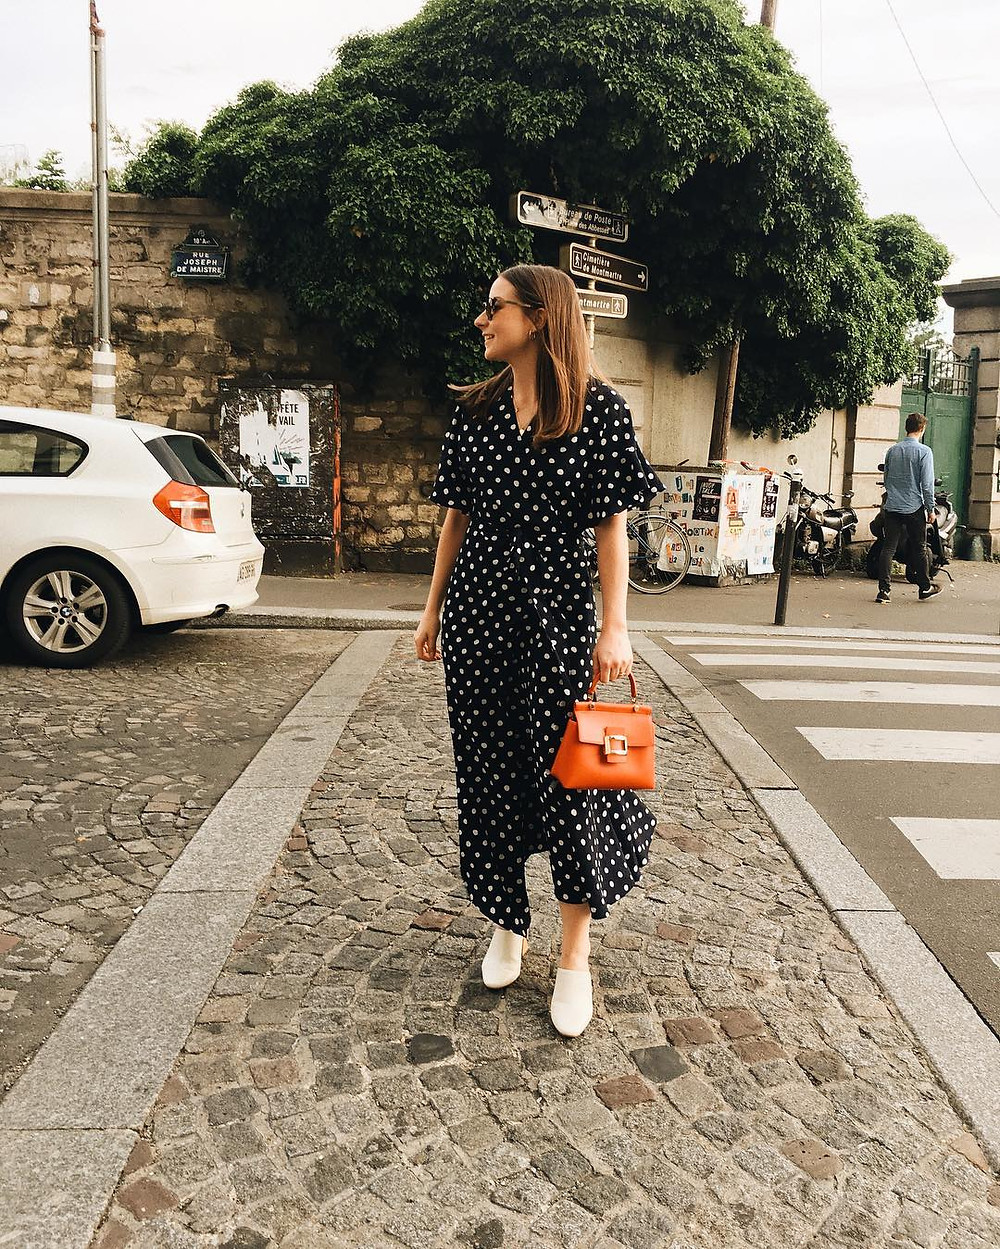 emily dawes wears spotted dress in paris